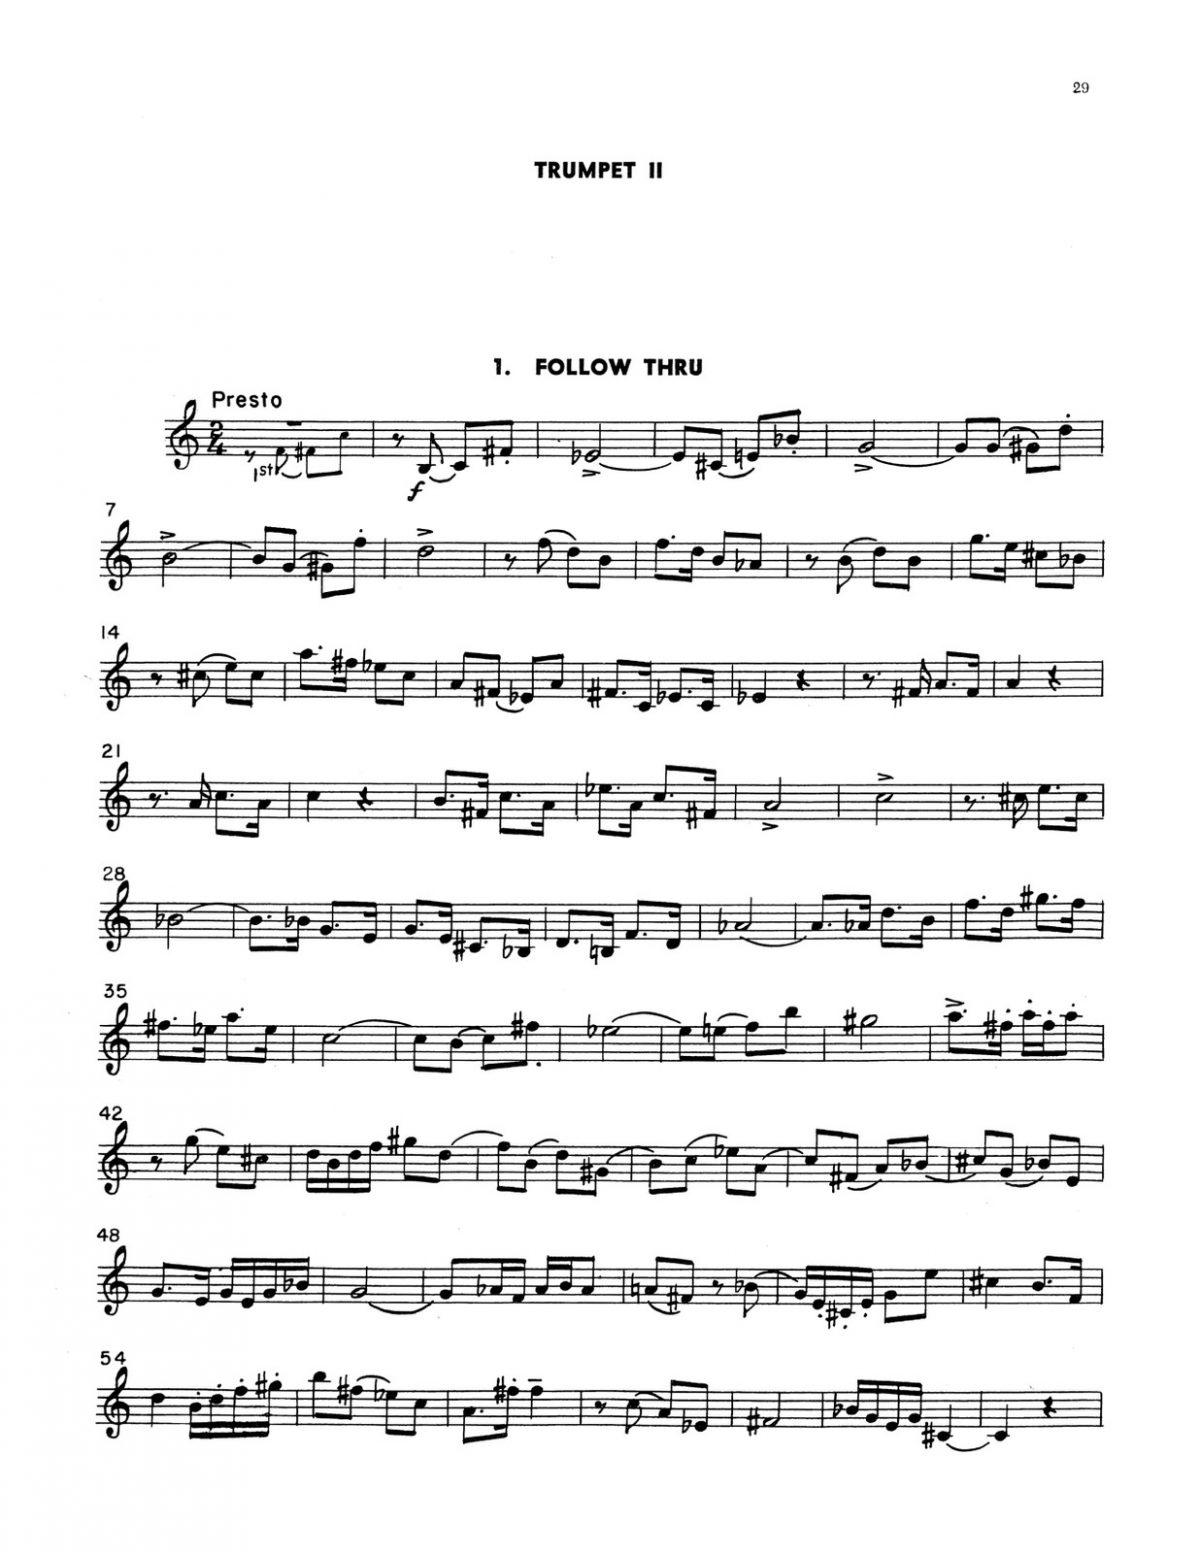 Broiles, Trumpet Studies and Duets Book 2-p31